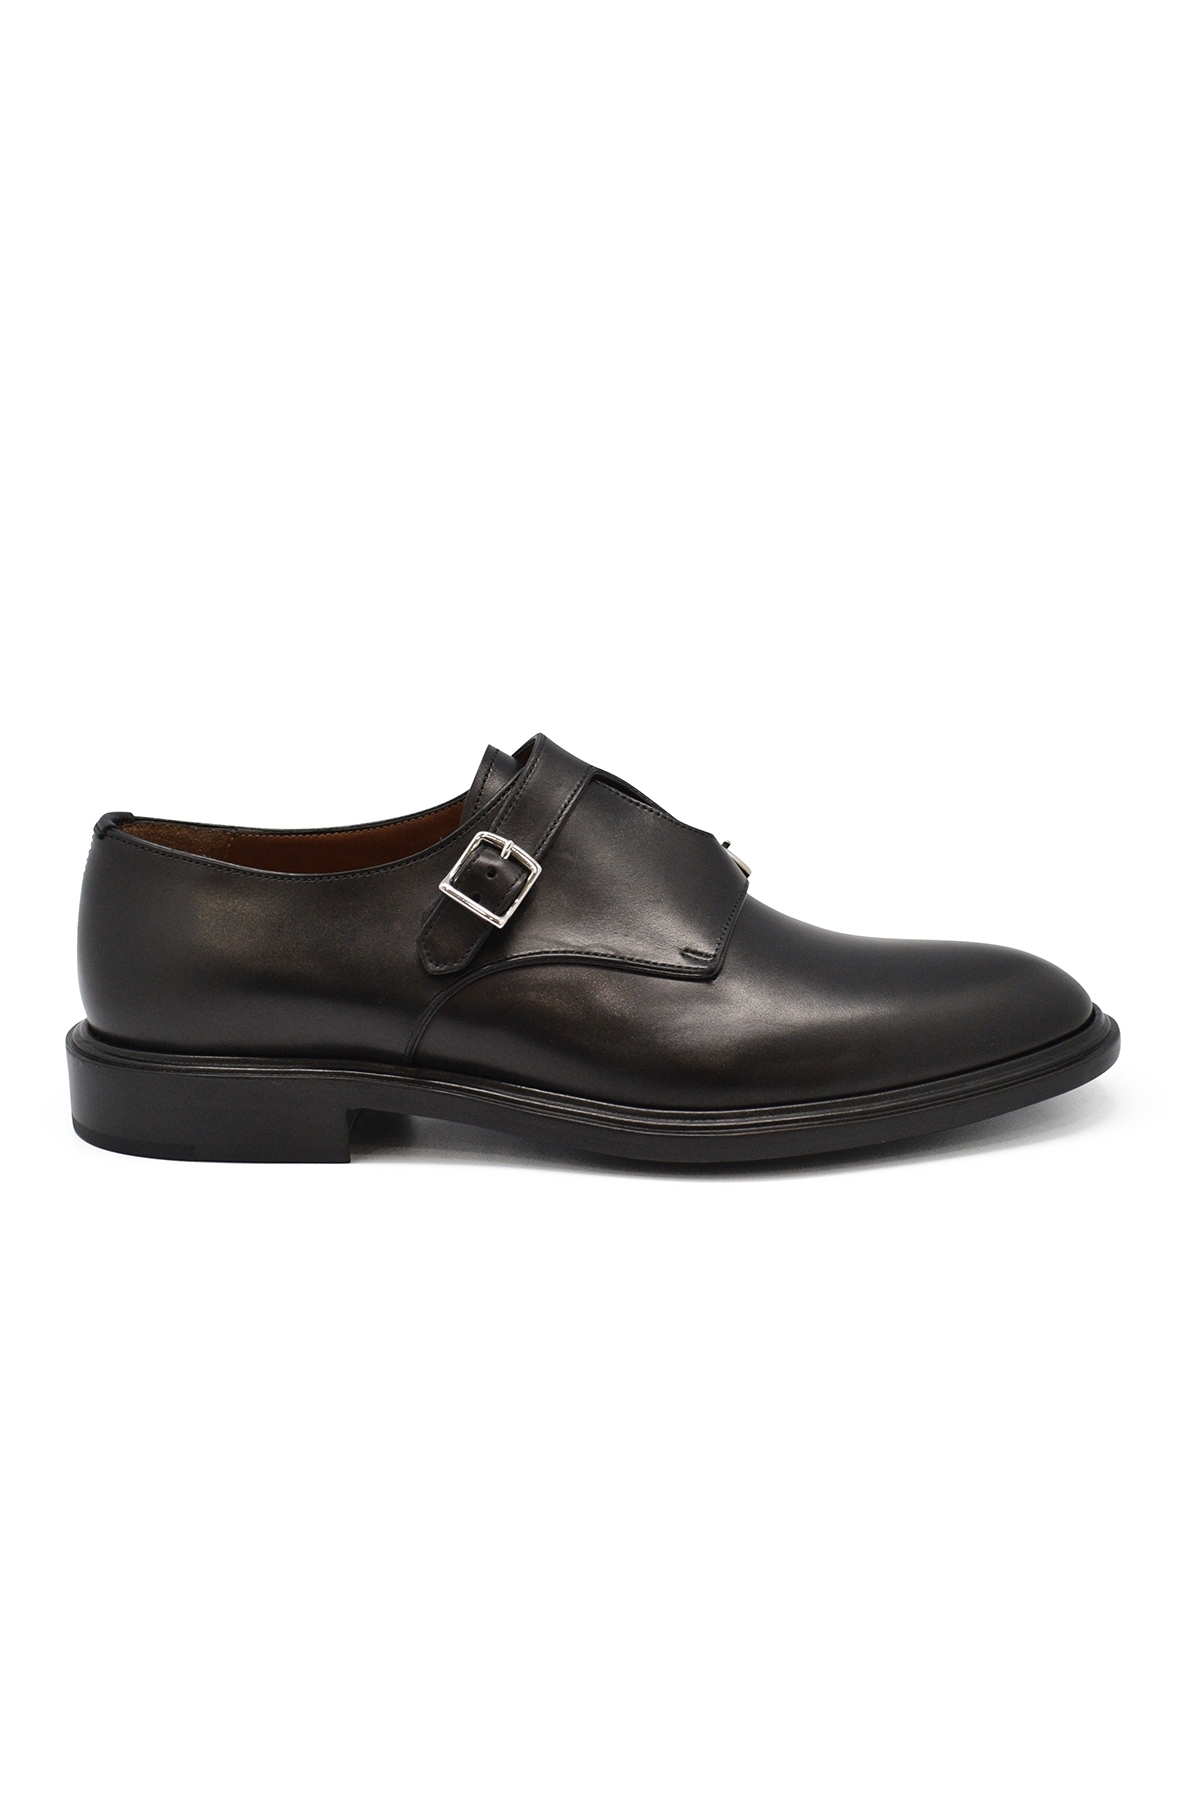 Buckles leather shoes